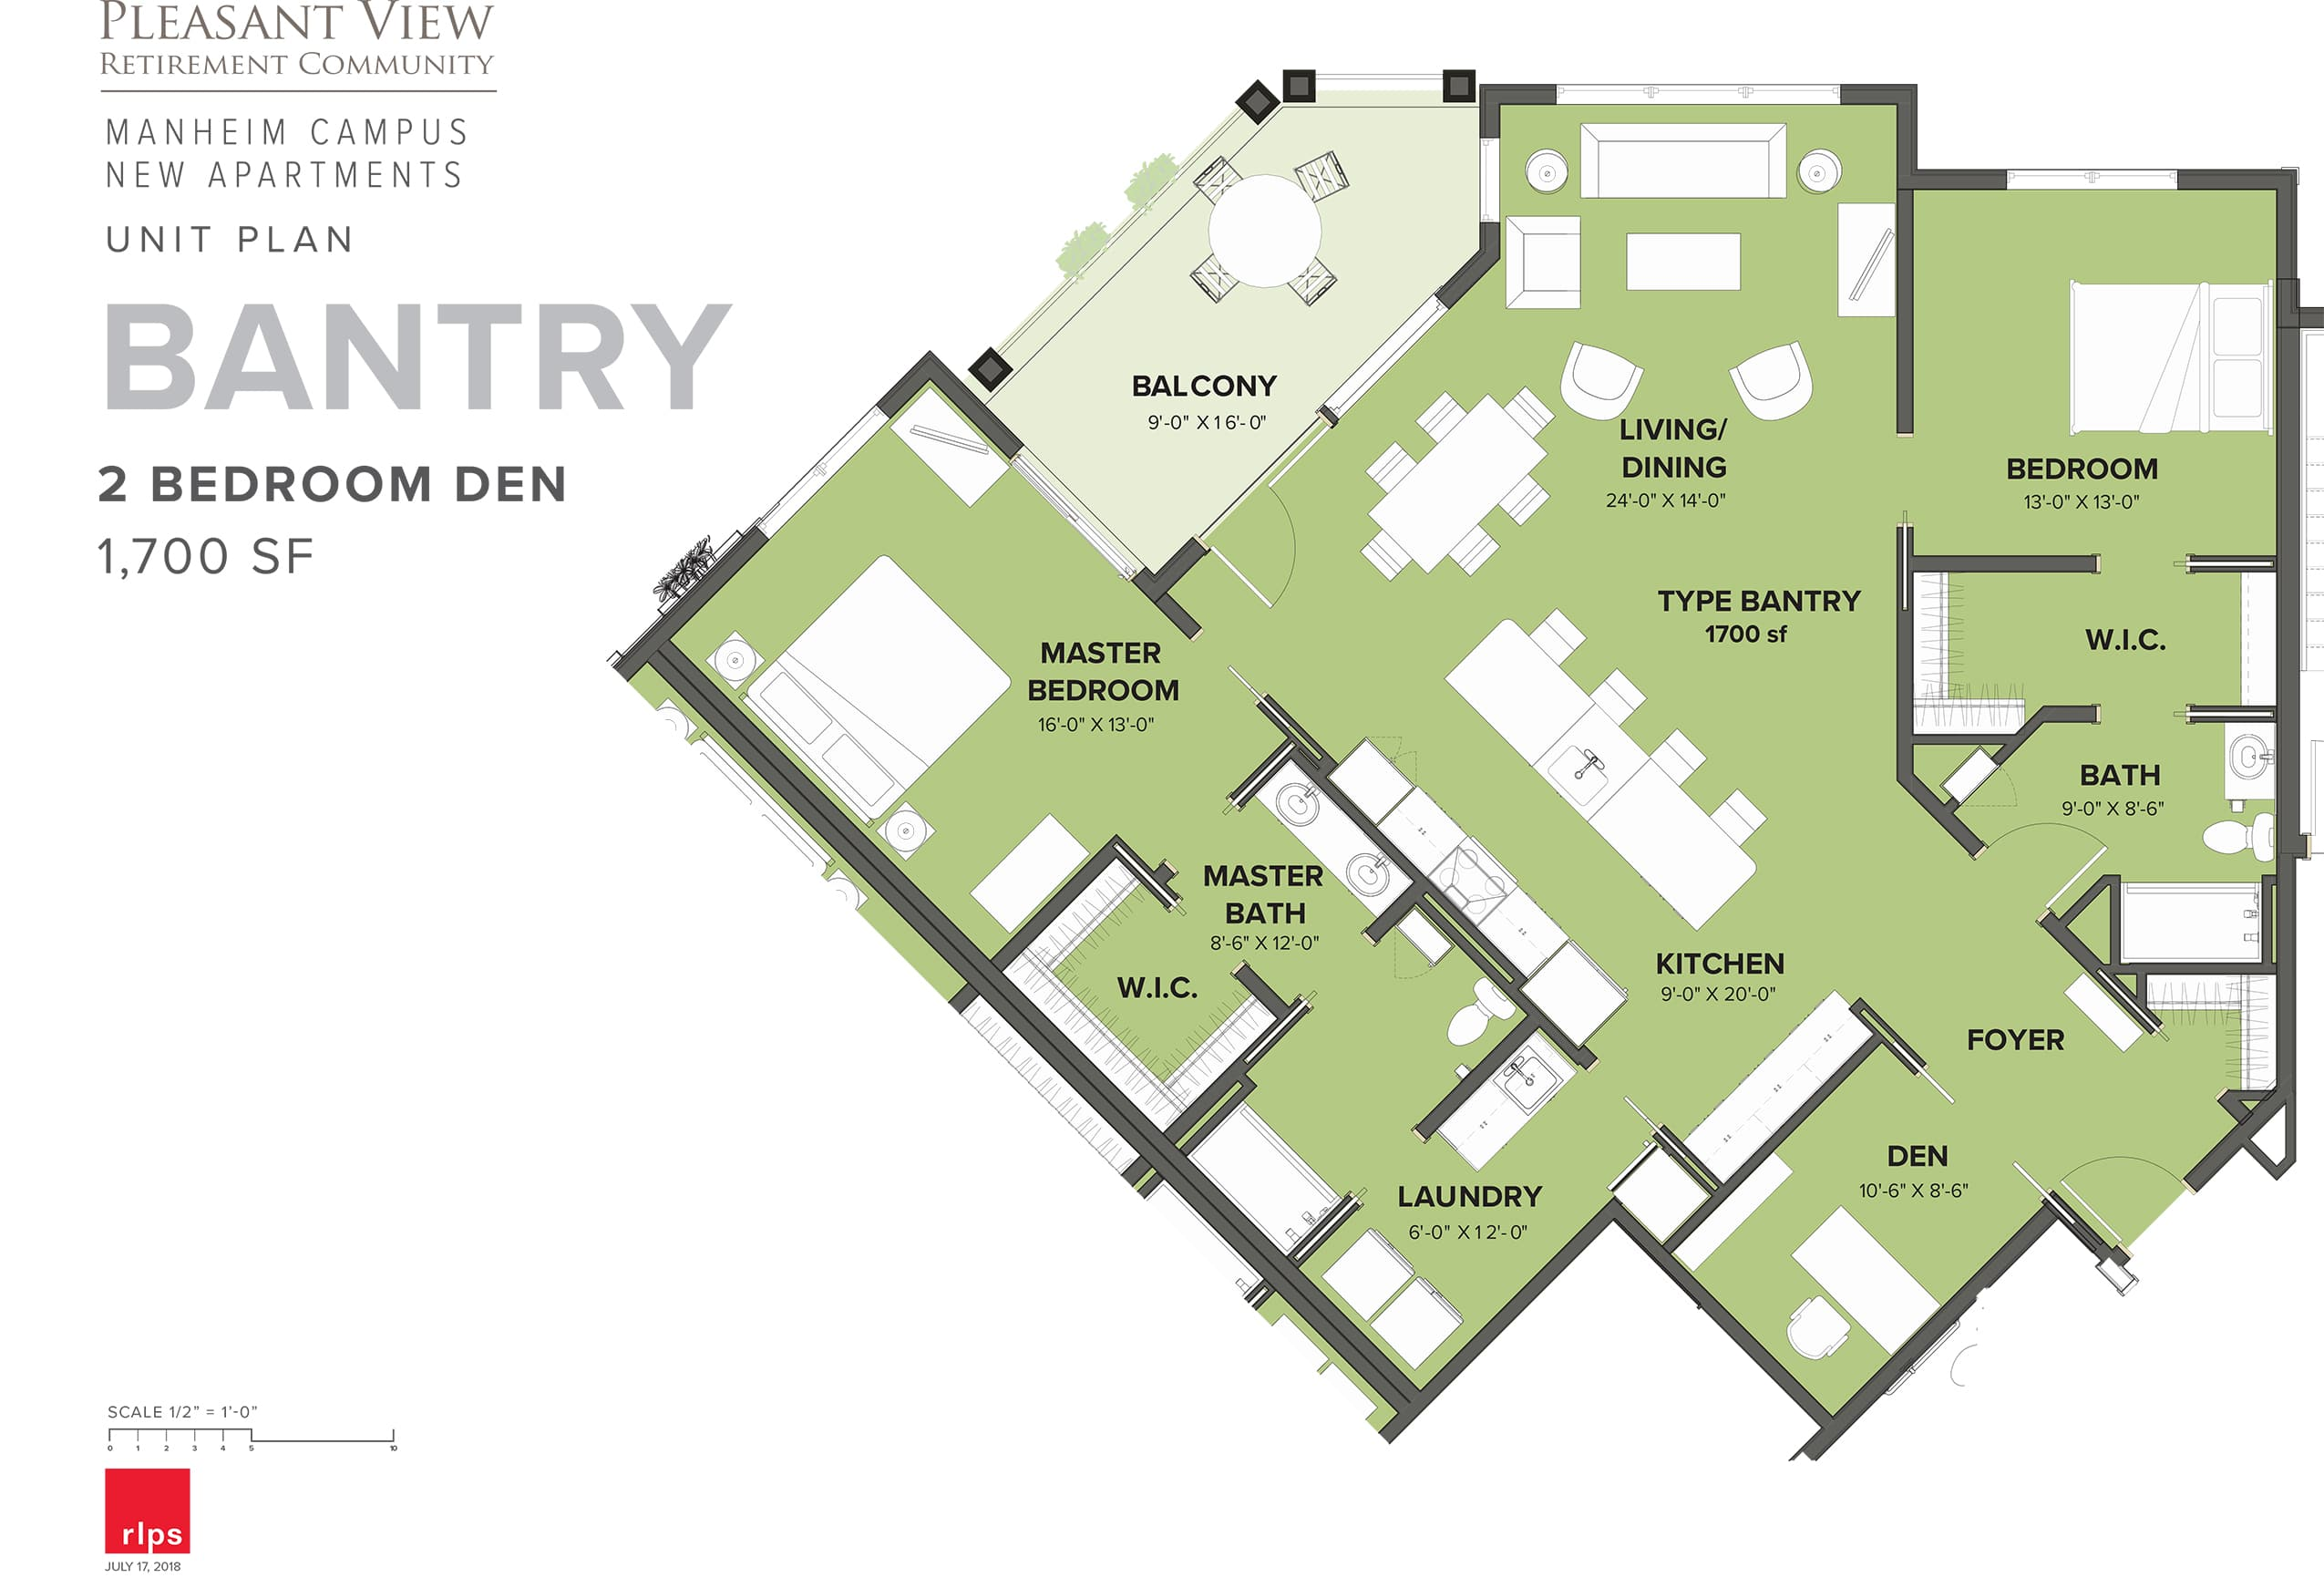 Carlow Campus Map.Private Apartments Pleasant View Pleasant View